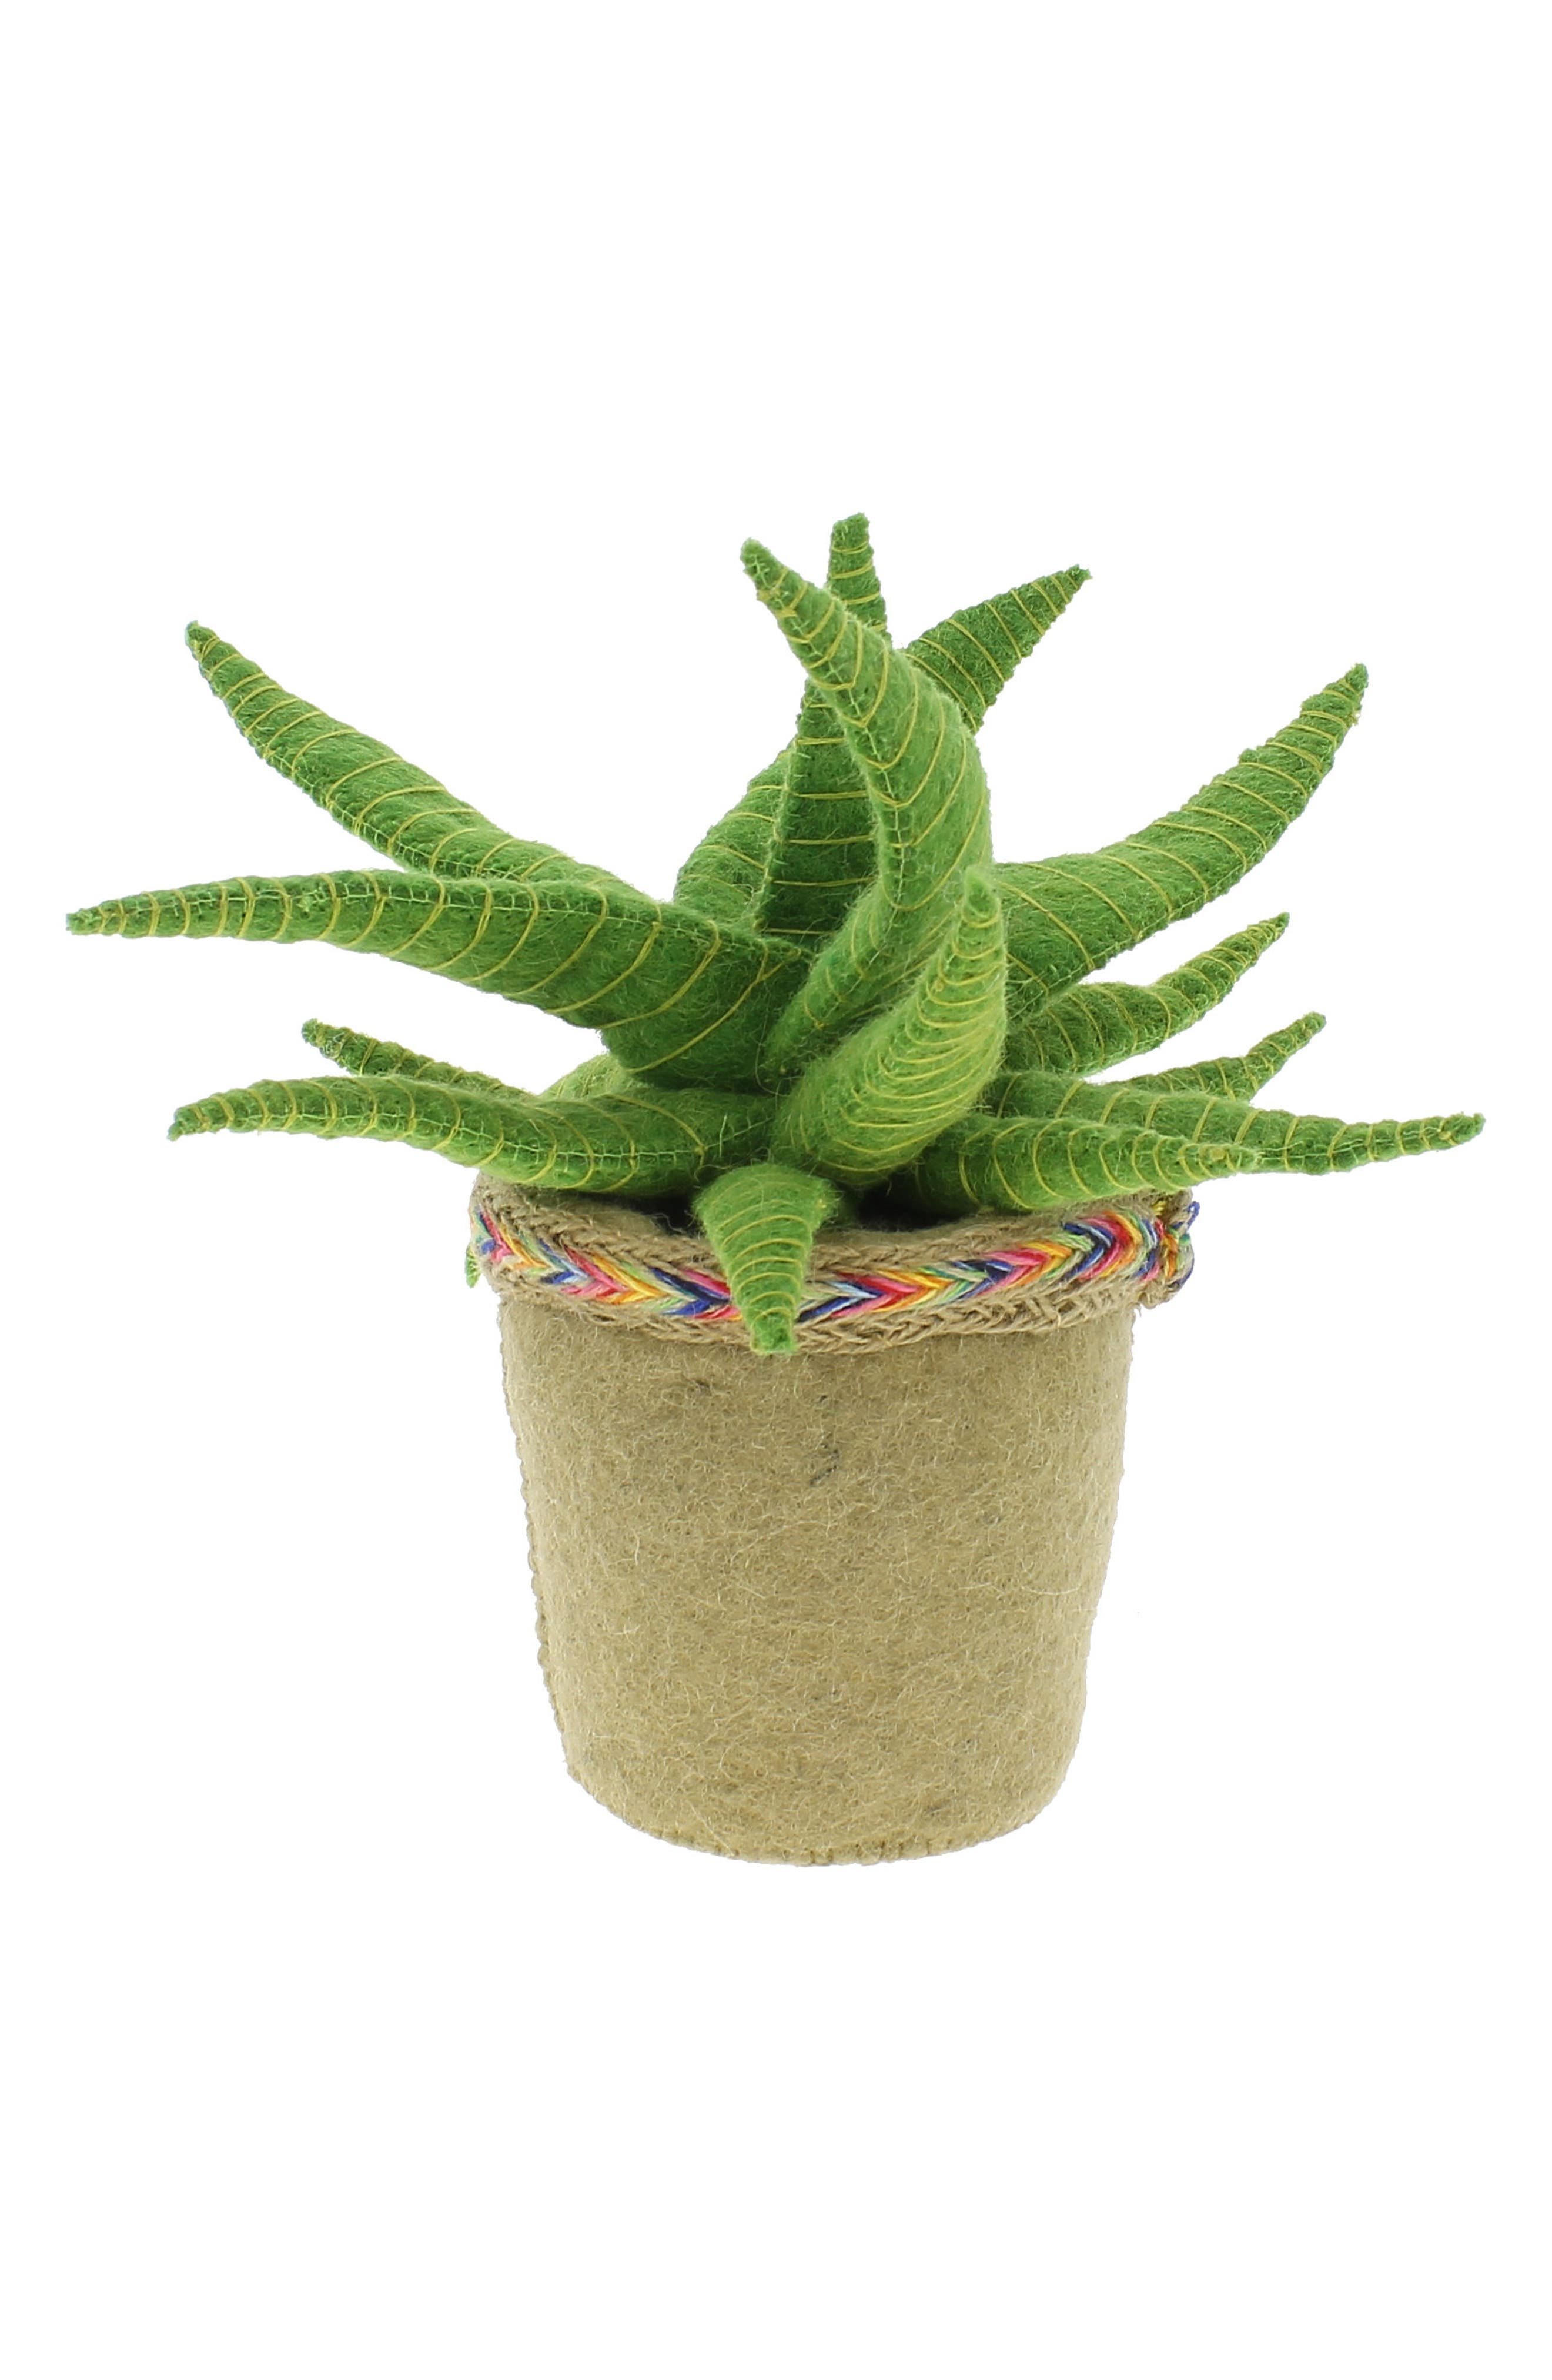 Alternate Image 1 Selected - Fiona Walker Stuffed Aloe Vera Cactus Weighted Bookend